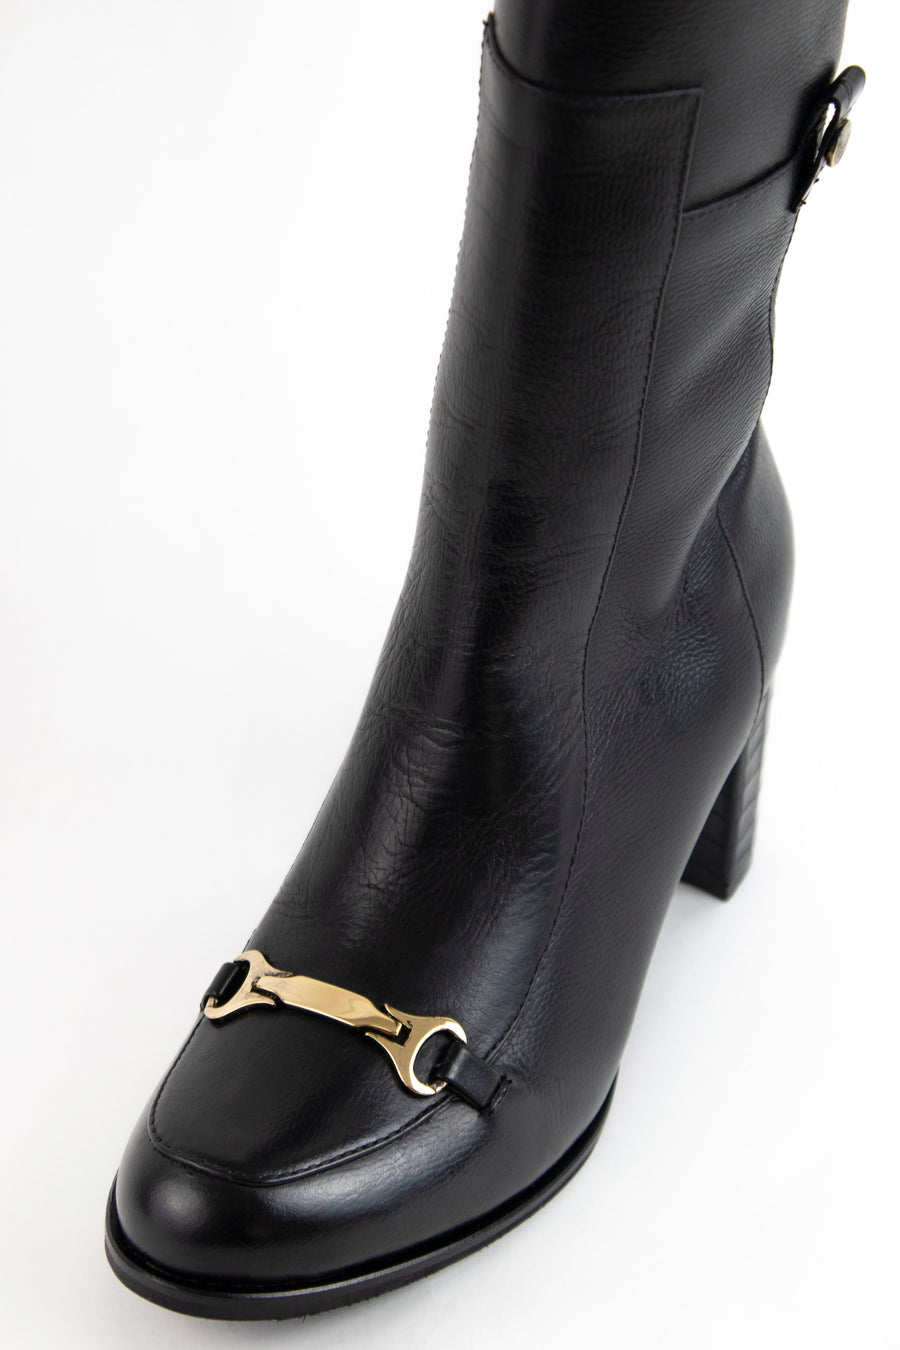 Seville knee high boots in black leather